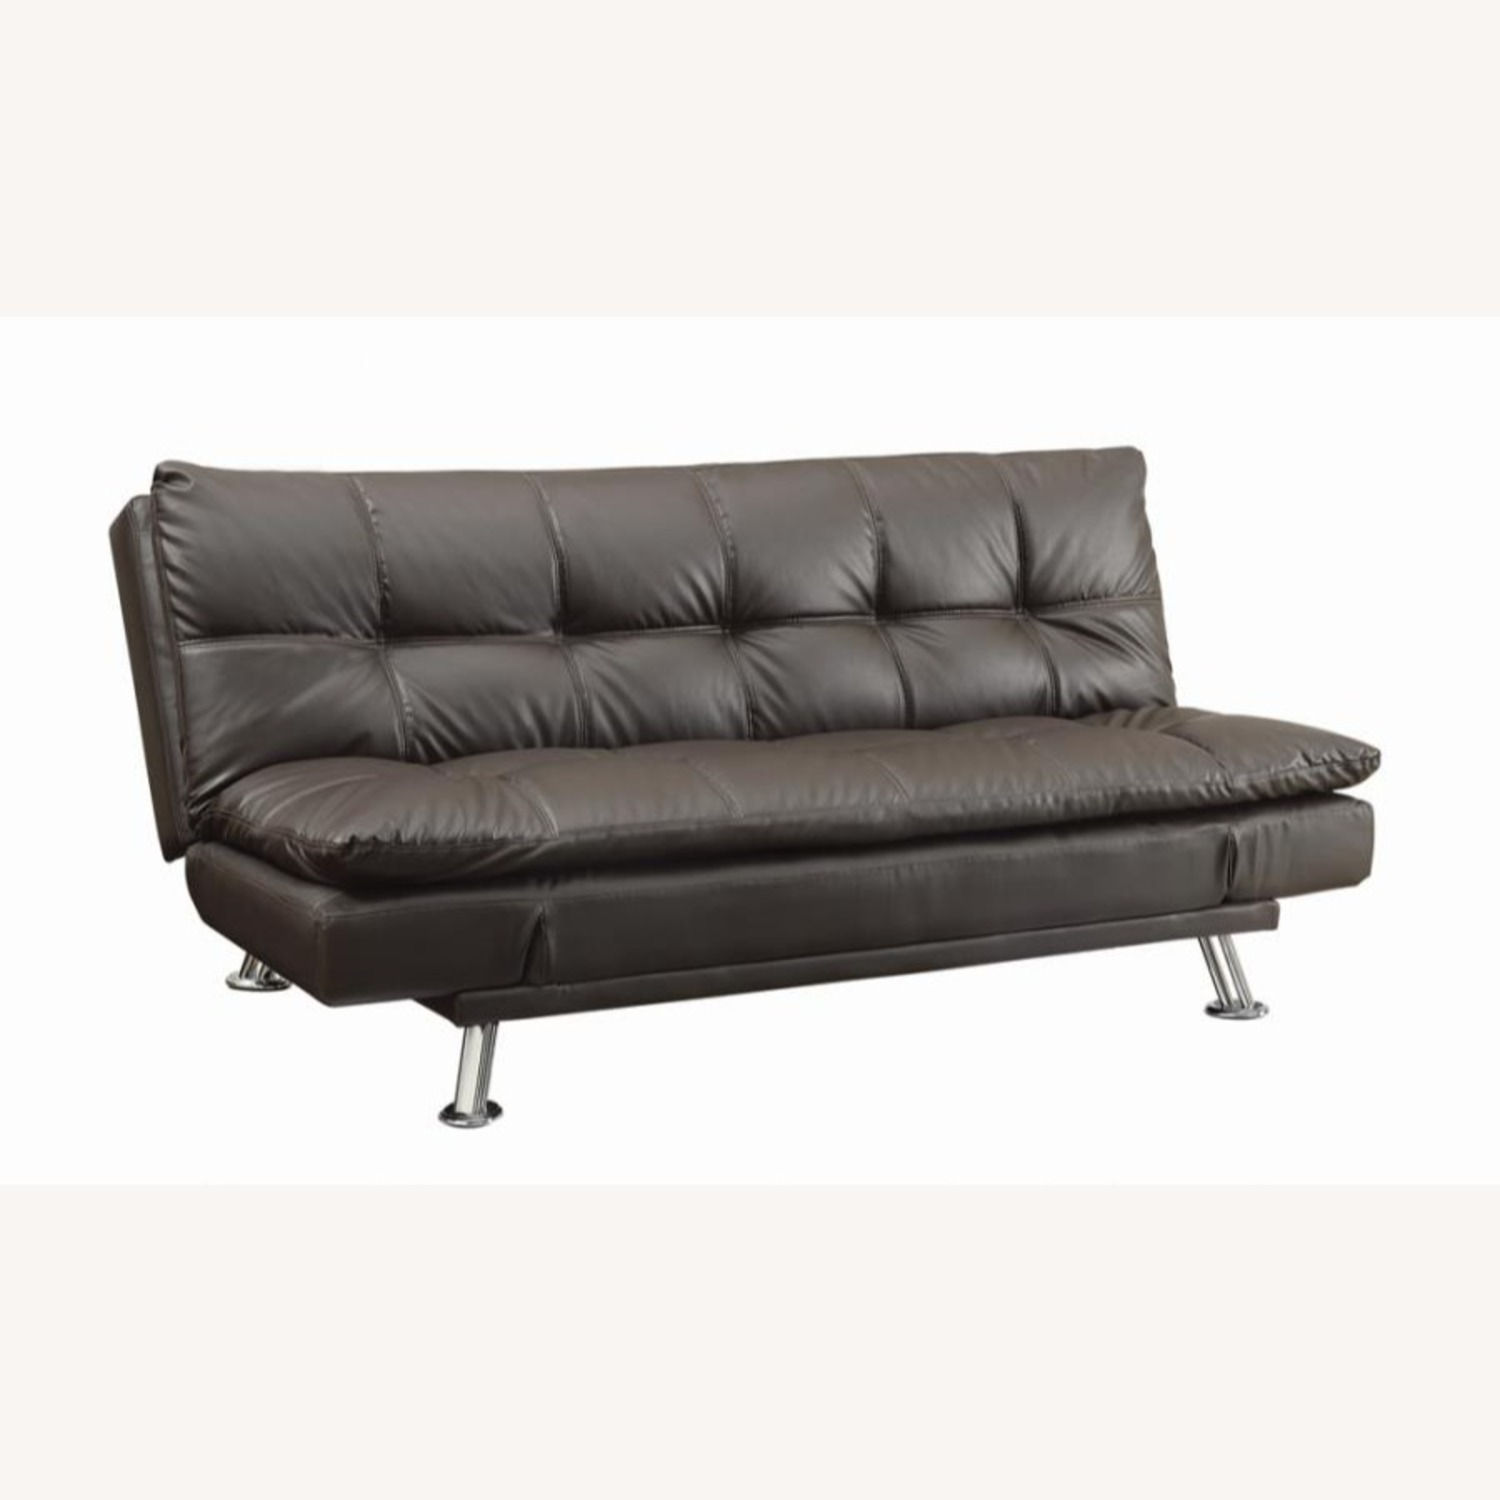 Sofa Bed In Brown Leatherette W/ Chrome Legs - image-0